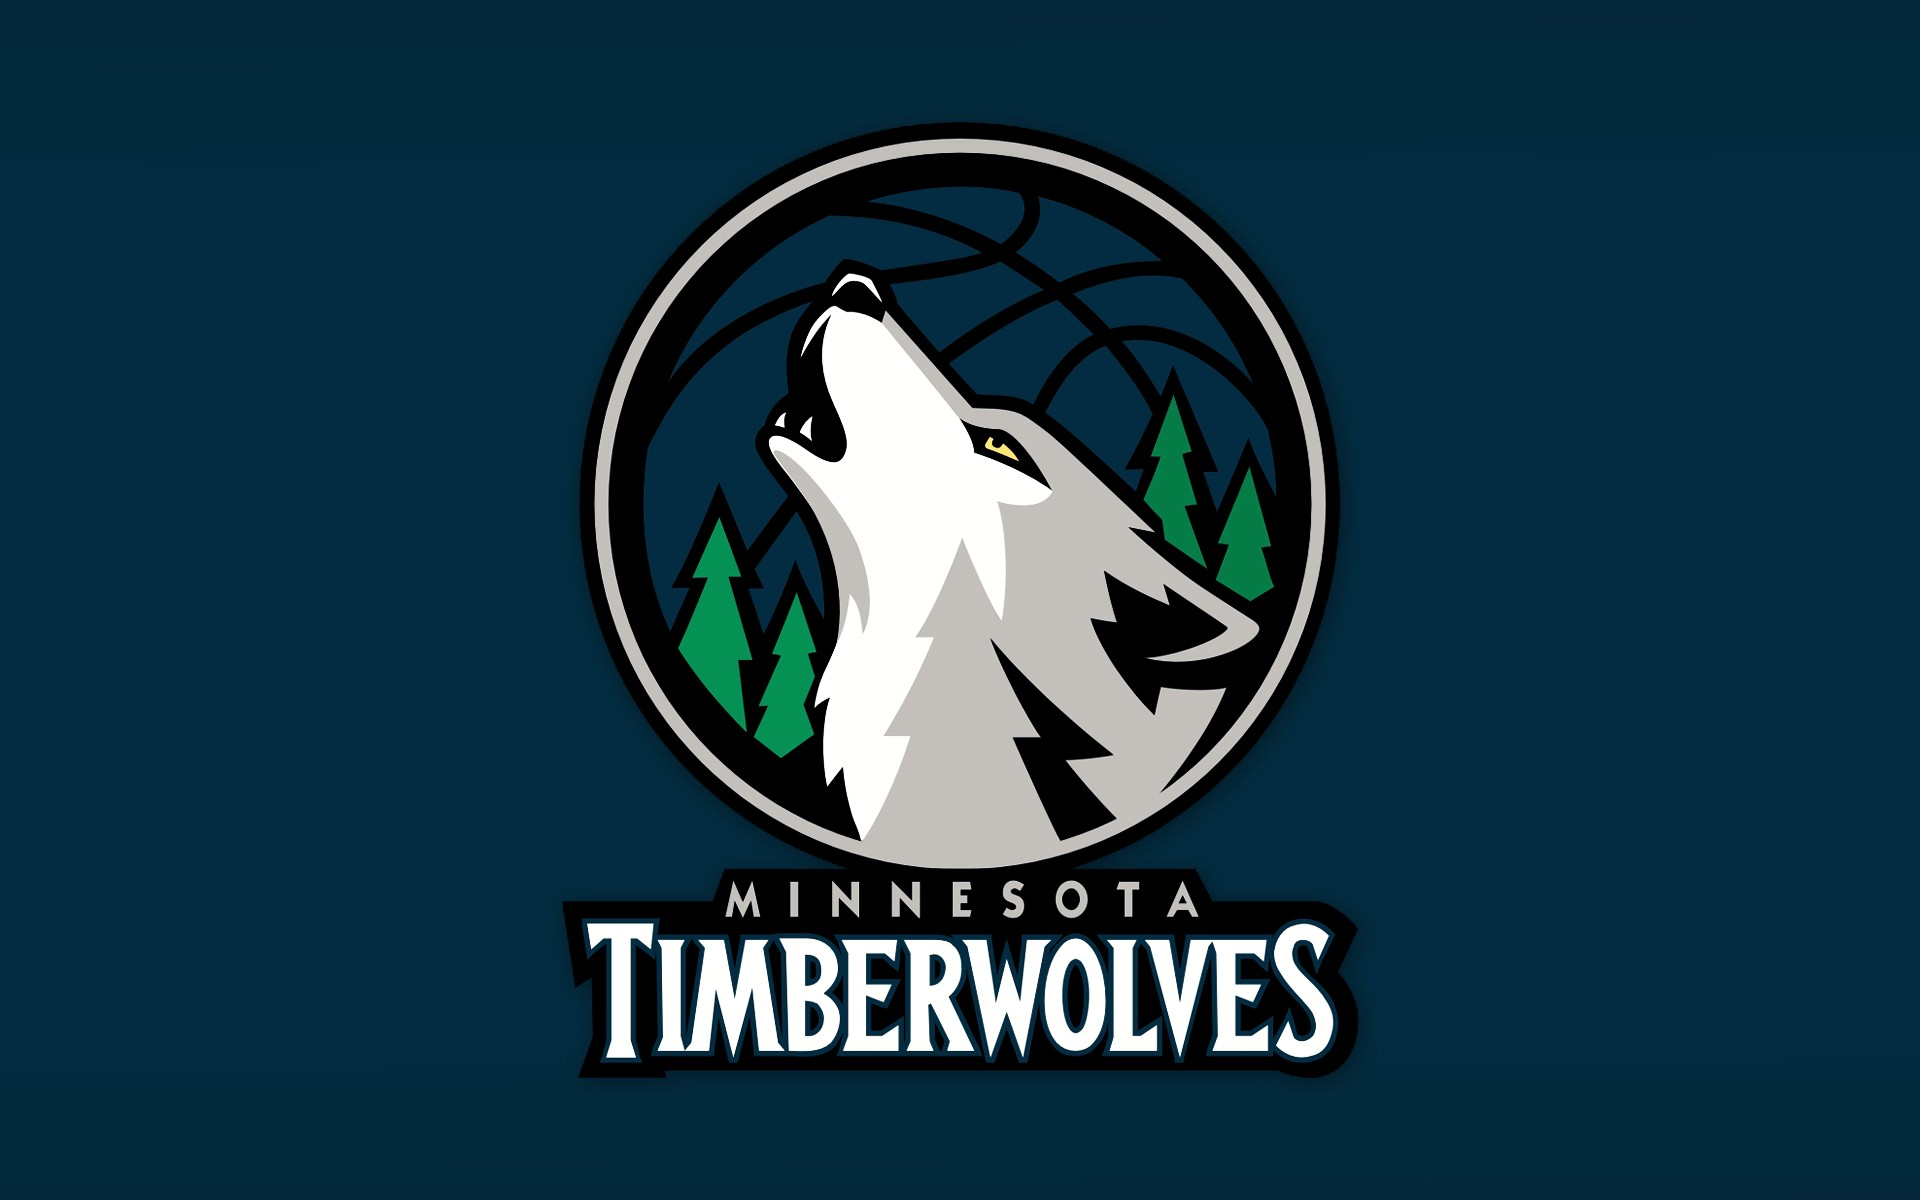 Wallpaper Minnesota Timberwolves Wolves Modern Daily Stars Images 1920x1200